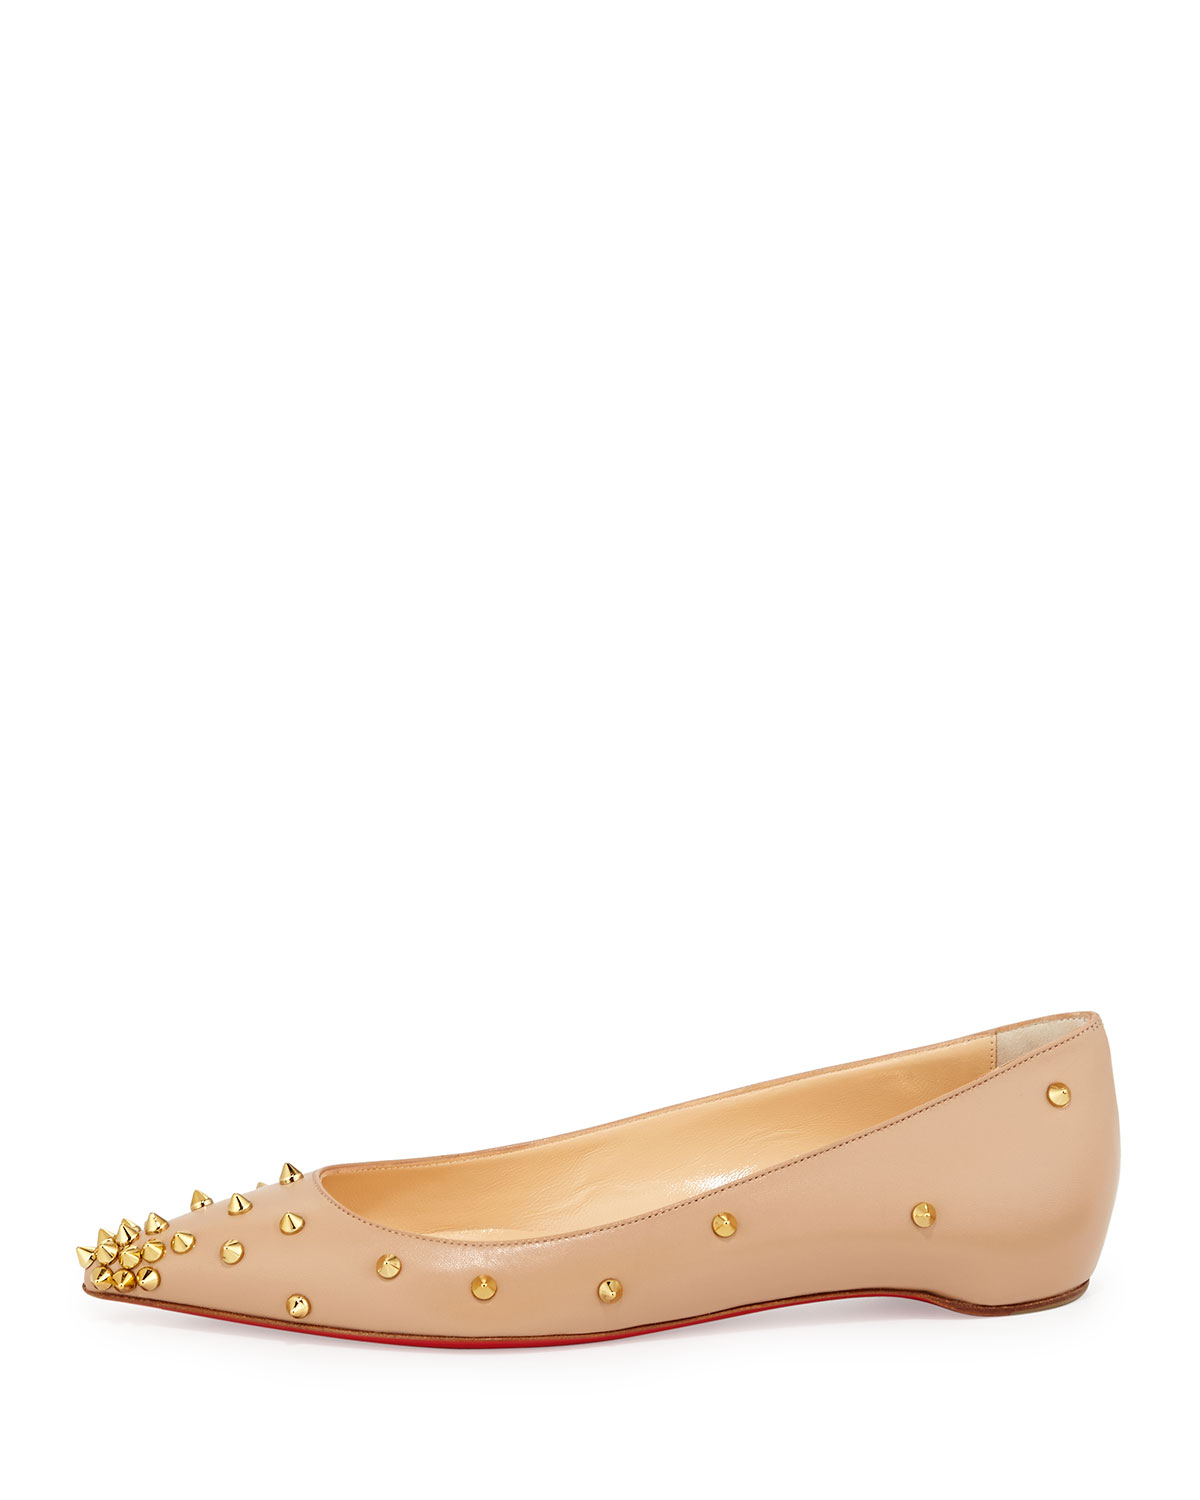 replicas christian louboutin - christian louboutin Degraspike pointed-toe flats | The Little Arts ...